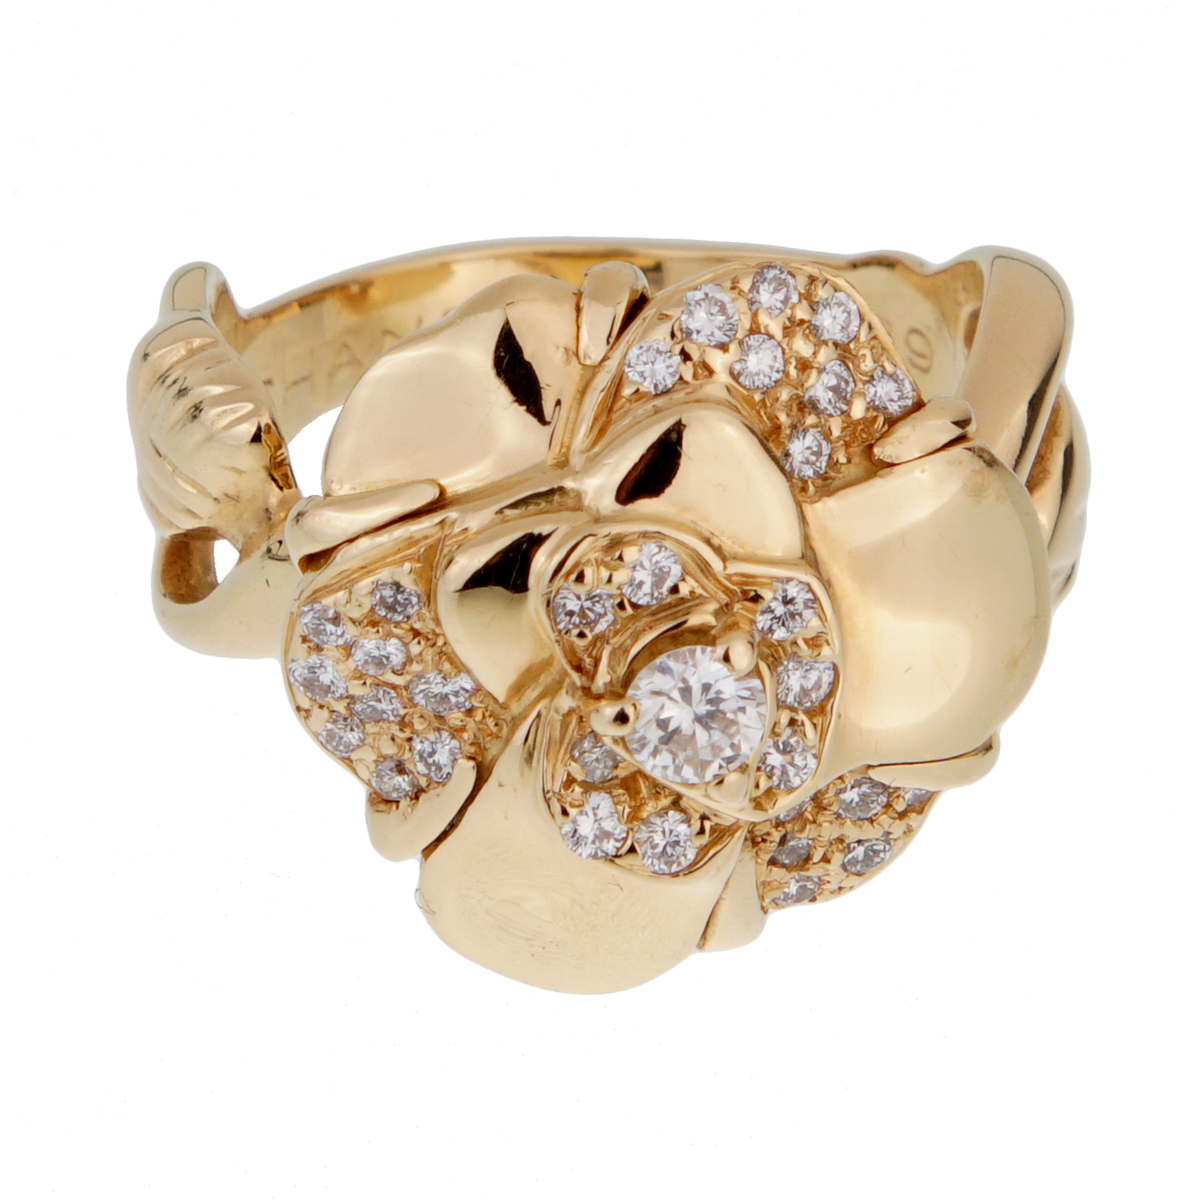 Chanel Camellia Yellow Gold Diamond Ring - Chanel Jewelry